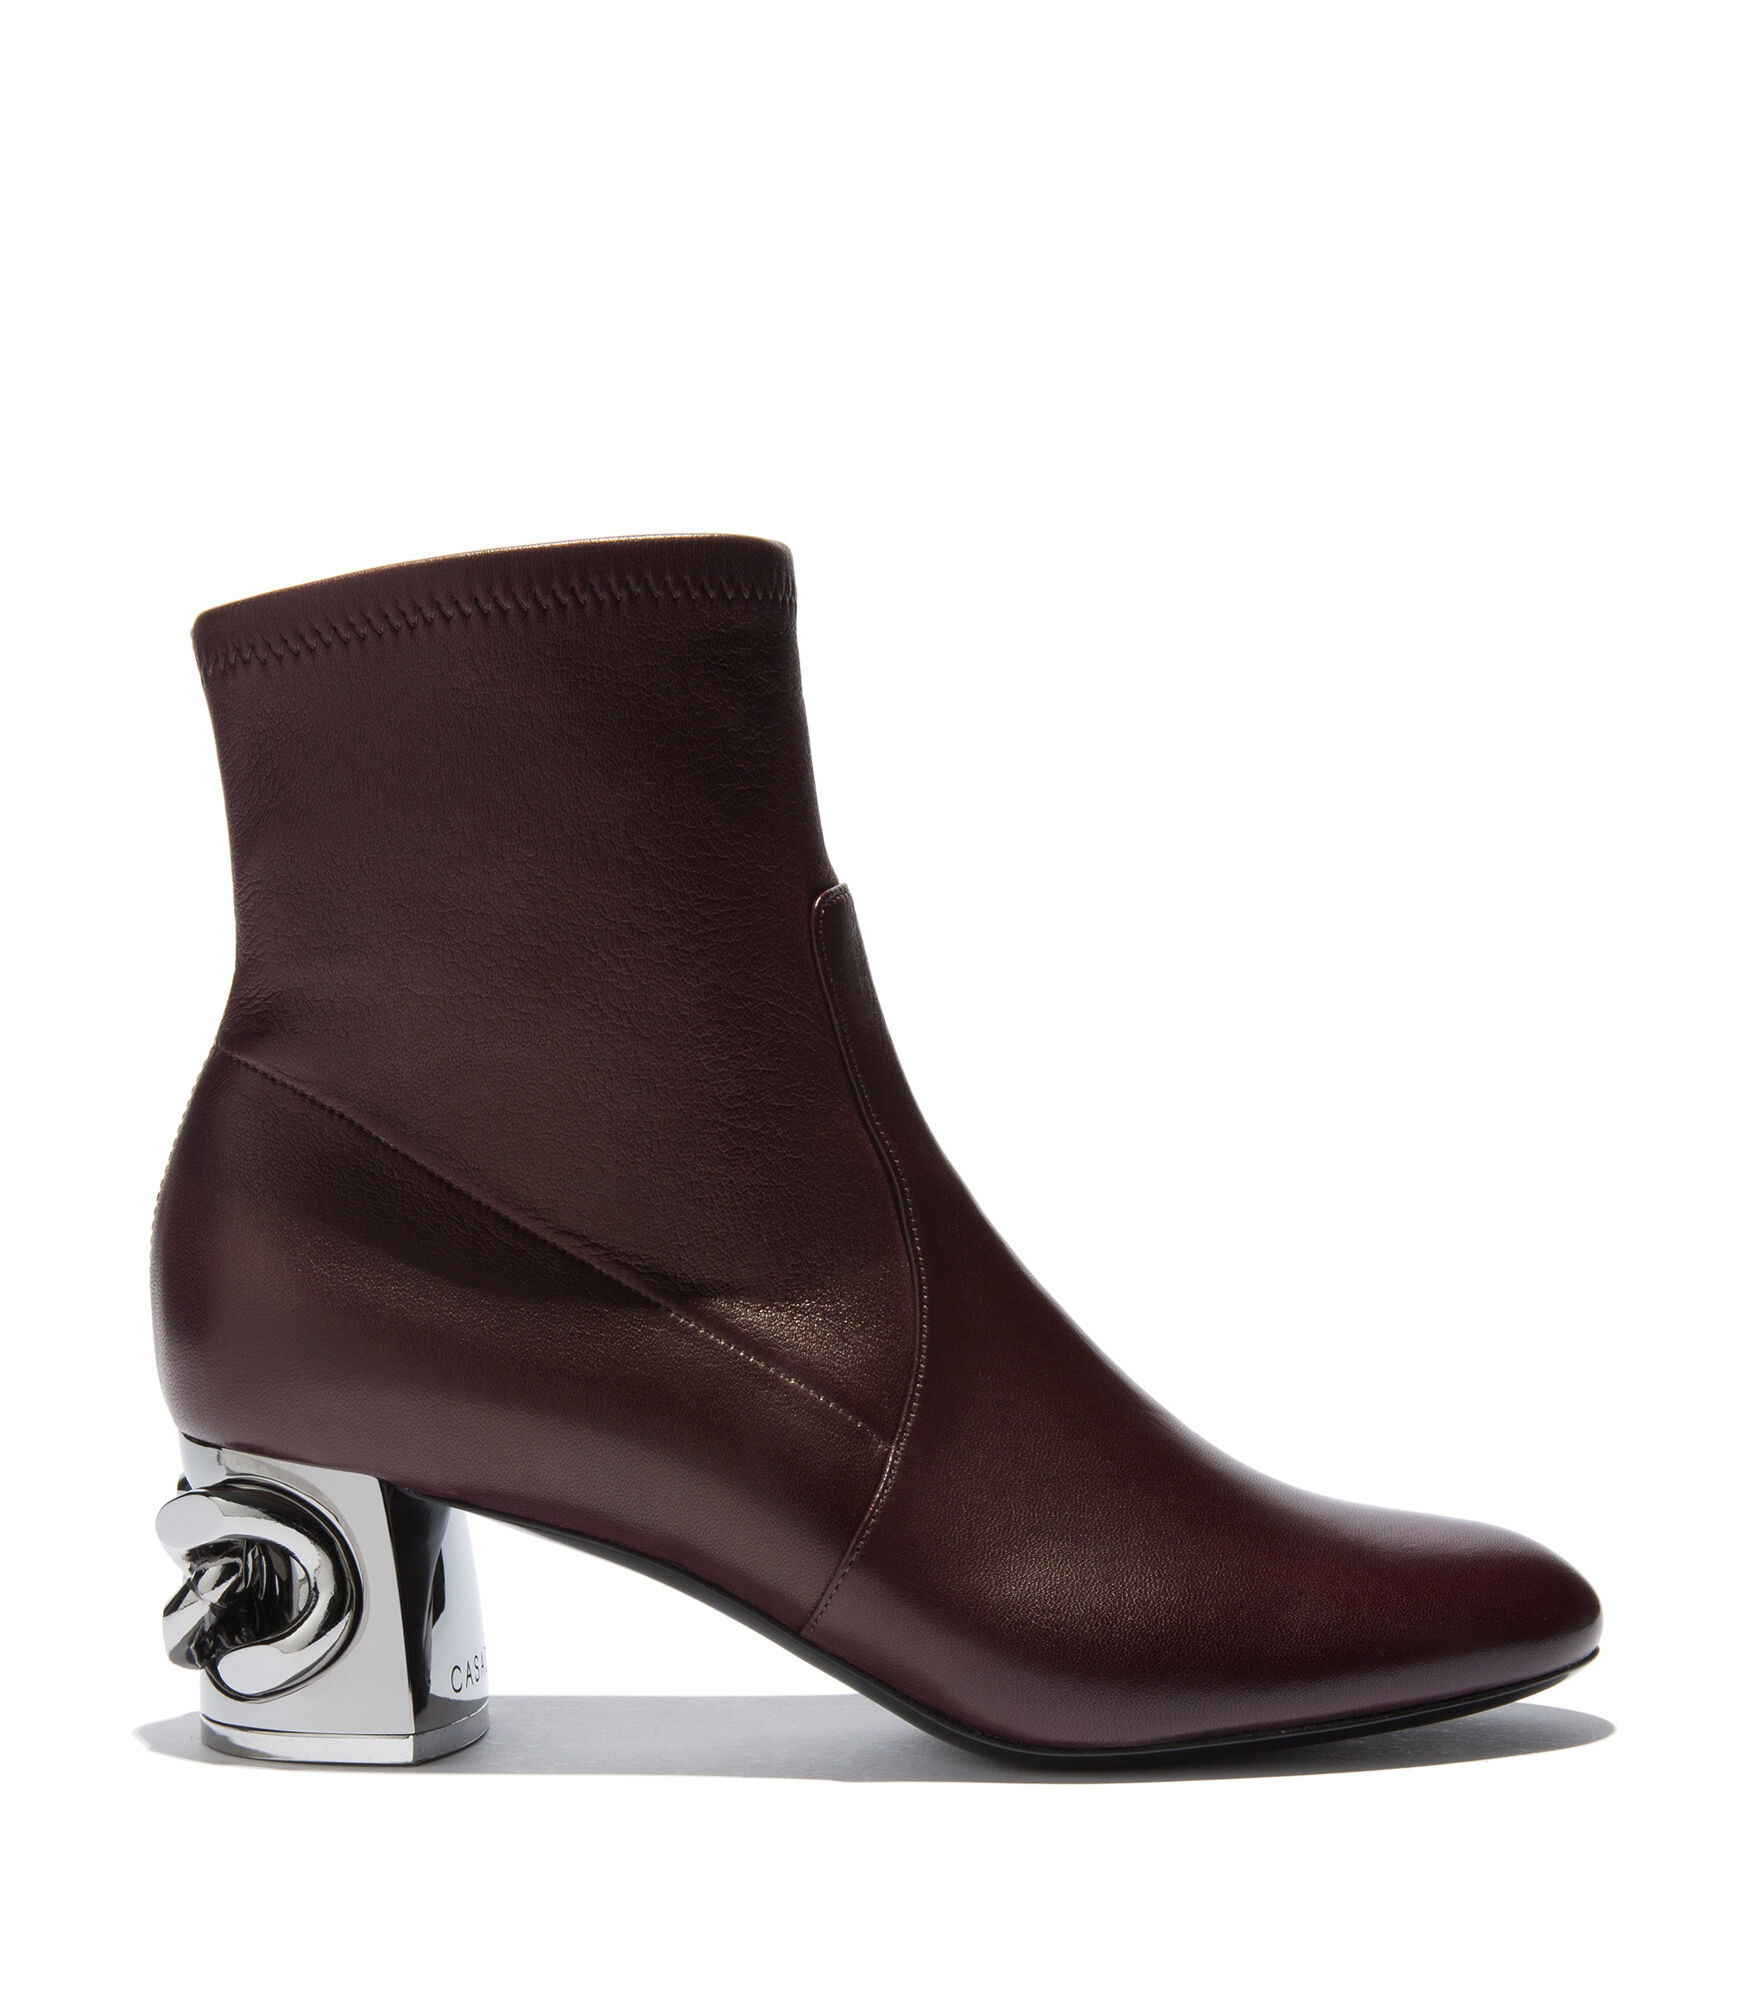 Casadei Ankle Boots - Maxi Chain Marsala Stretch nappa leather